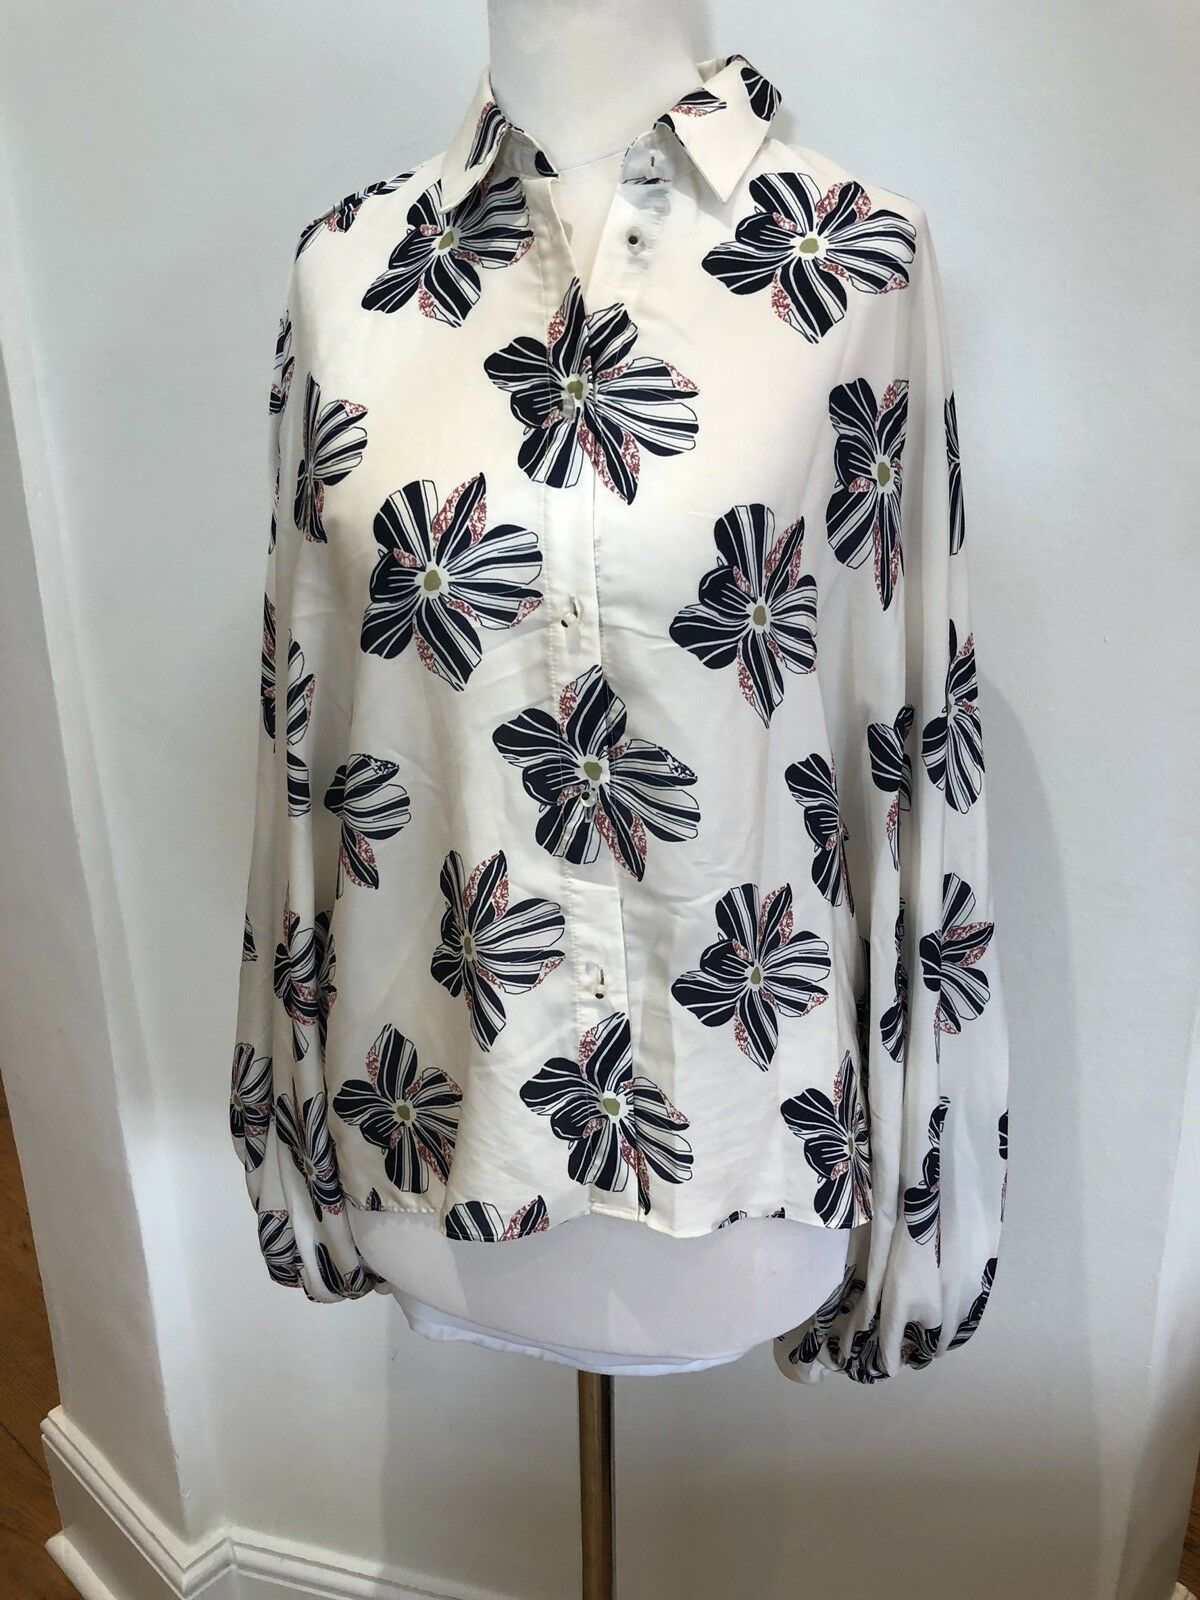 Alexis Beige Shirt With Flower Print S